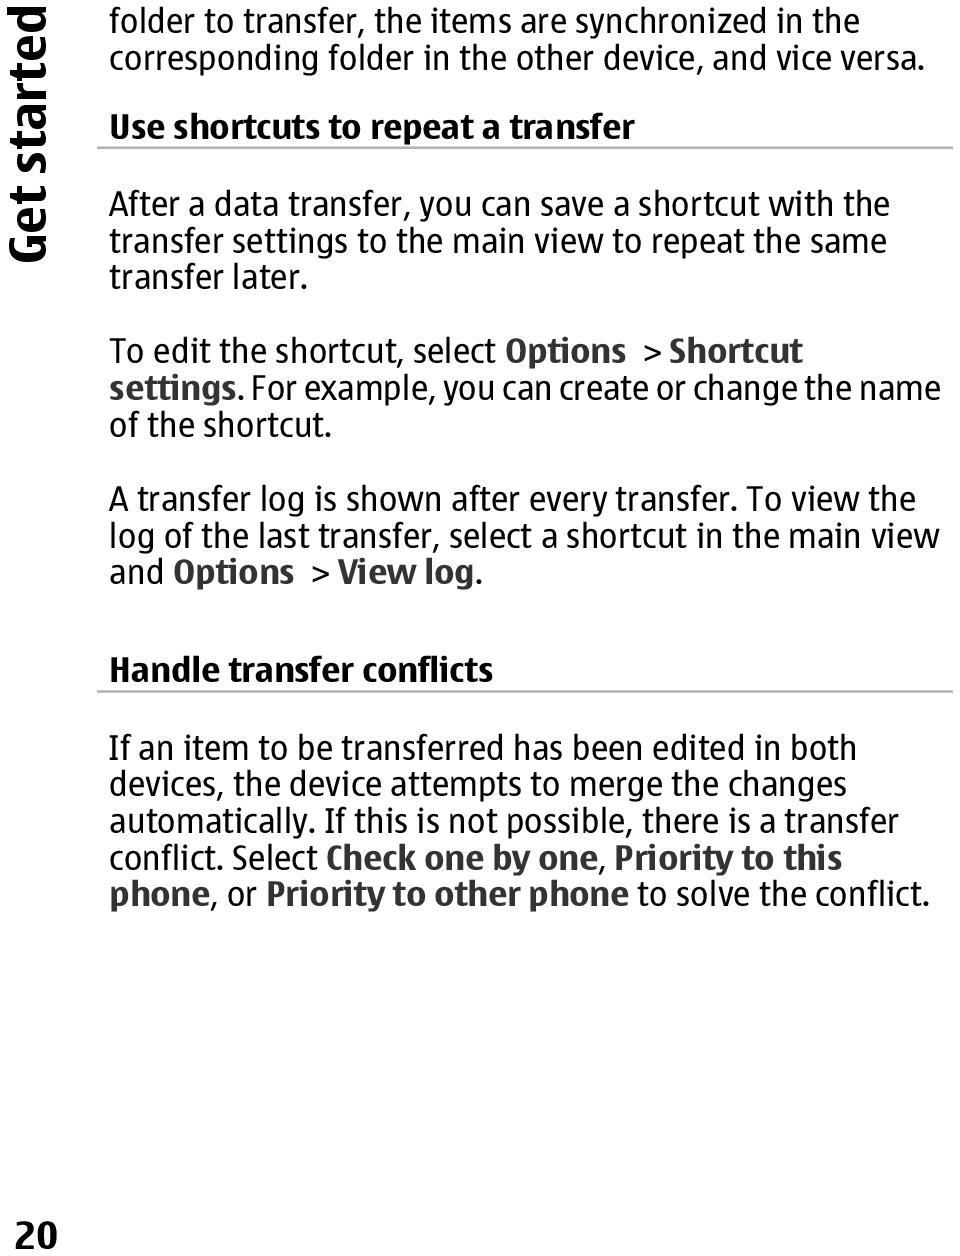 To edit the shortcut, select Options > Shortcut settings. For example, you can create or change the name of the shortcut. A transfer log is shown after every transfer.